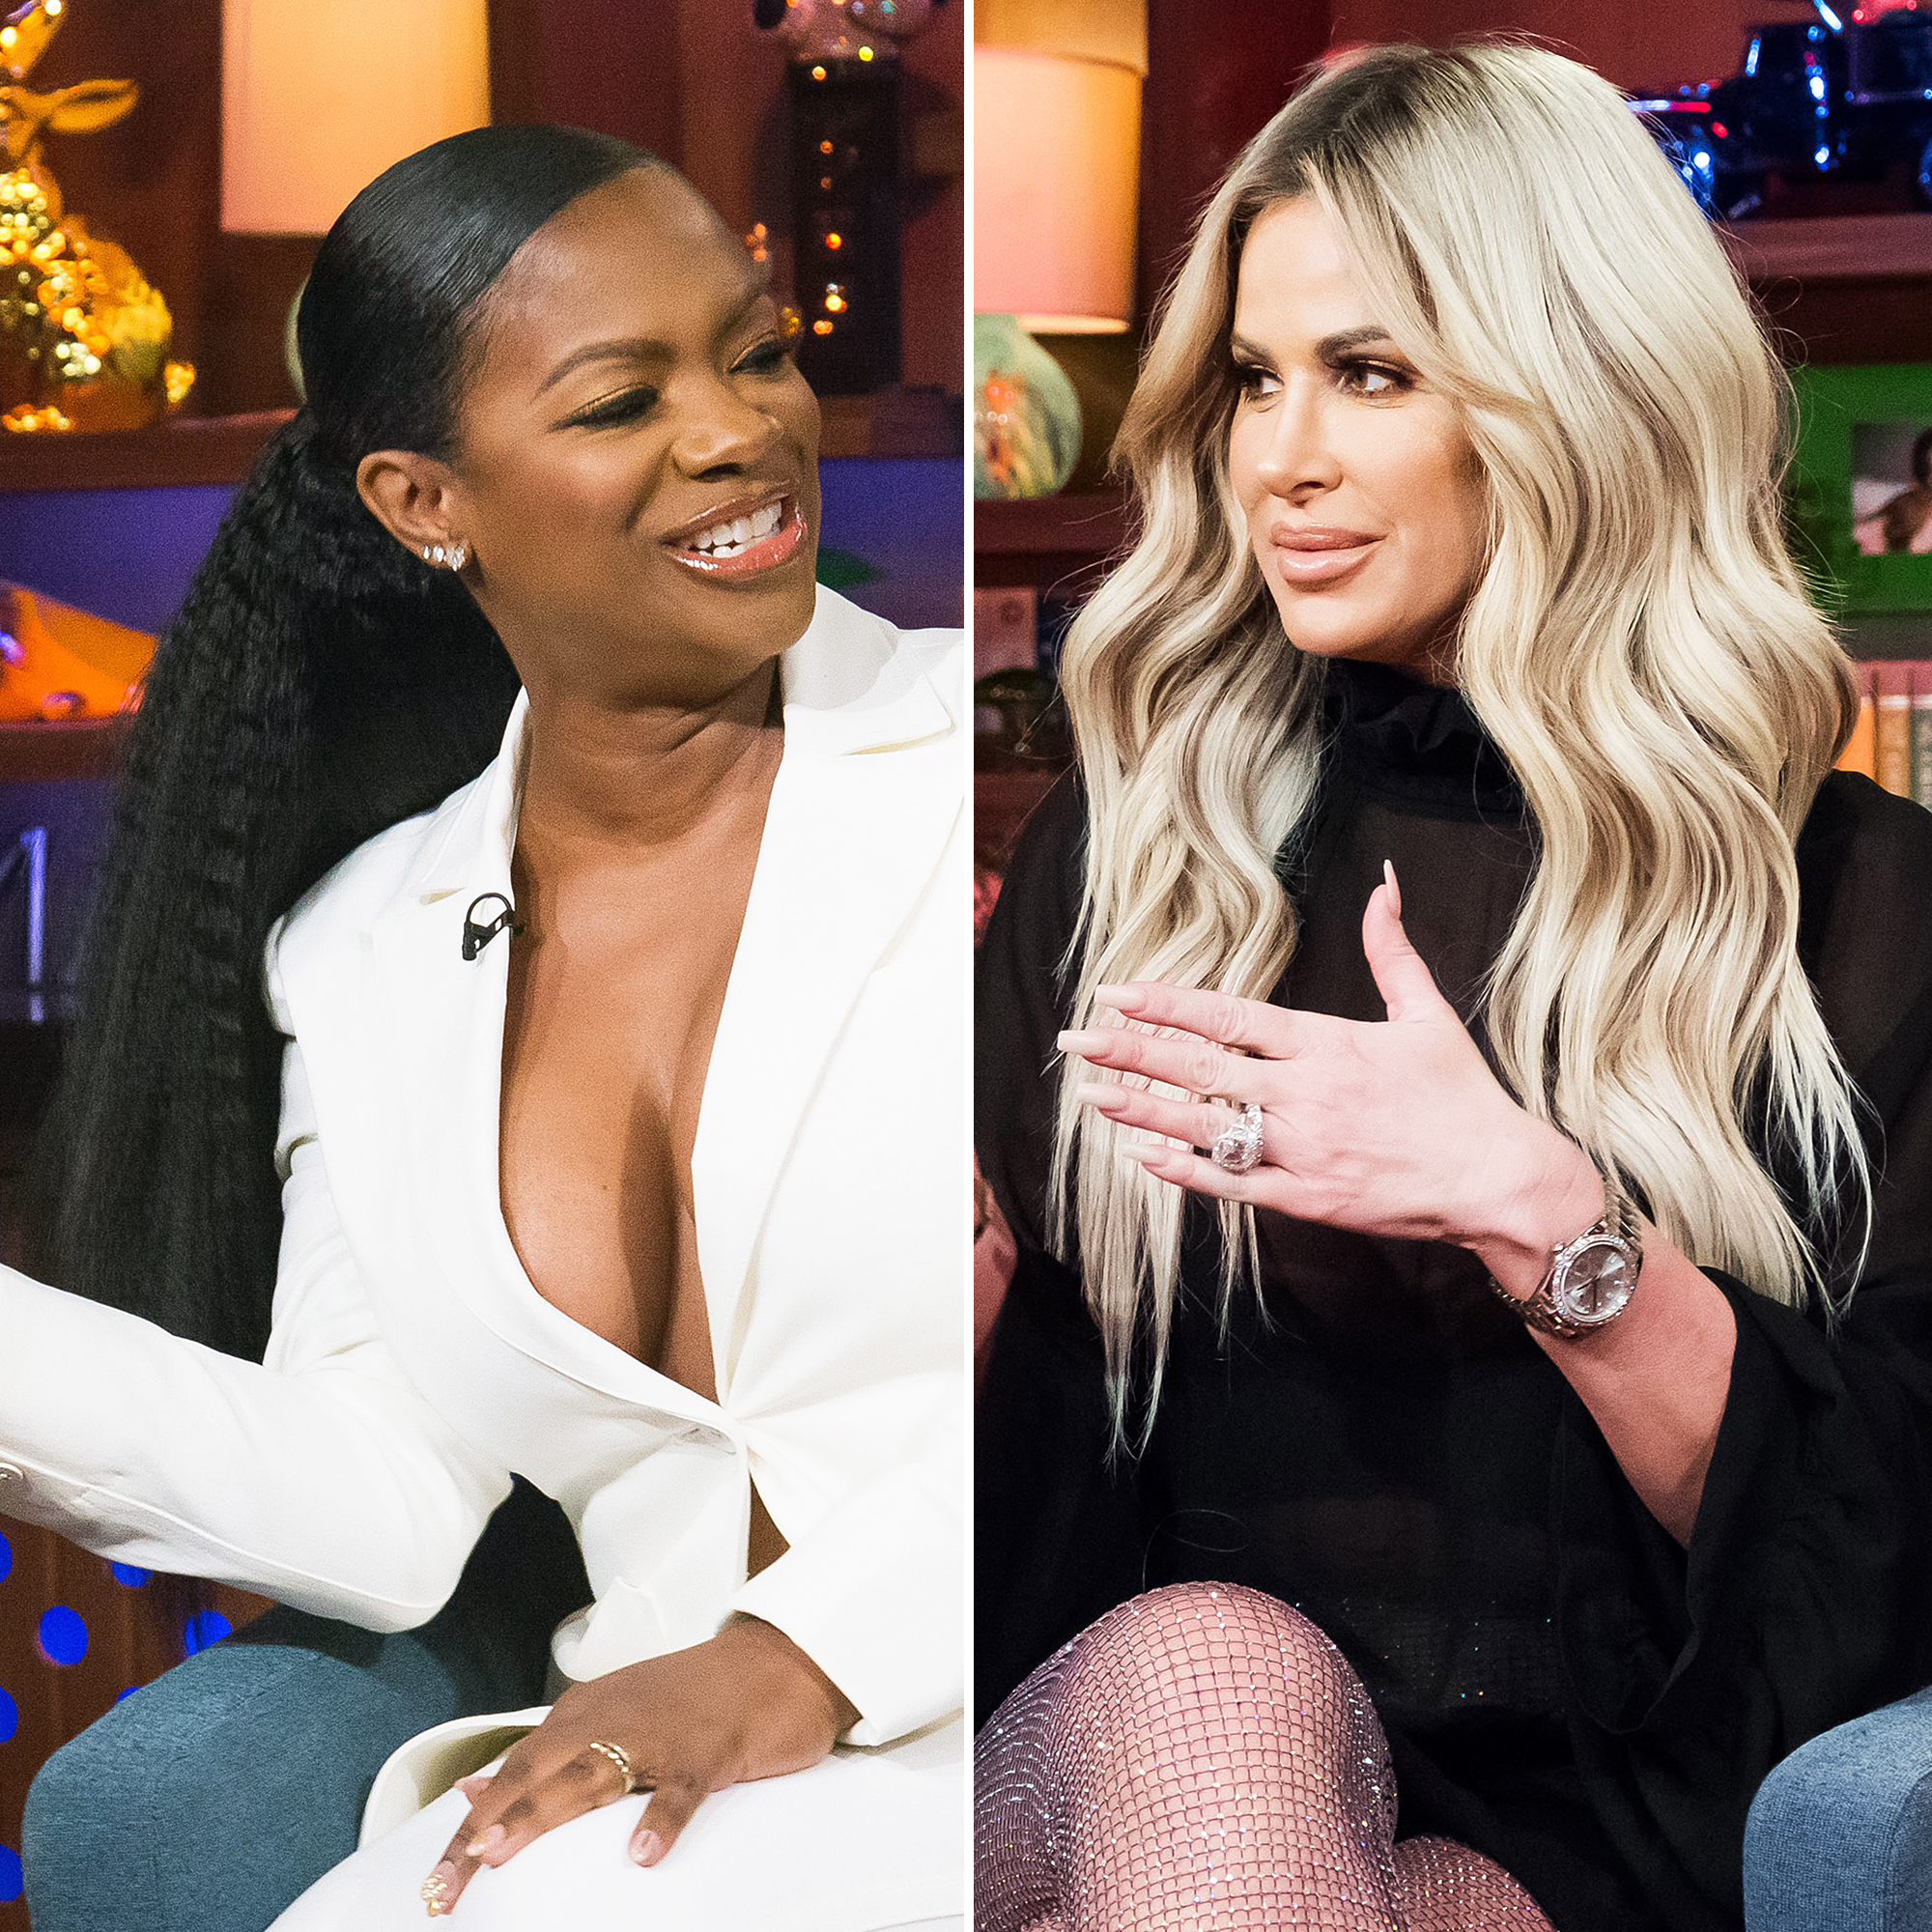 Kim Zolciak and NeNe Leakes war over drug accusations from Zolciak